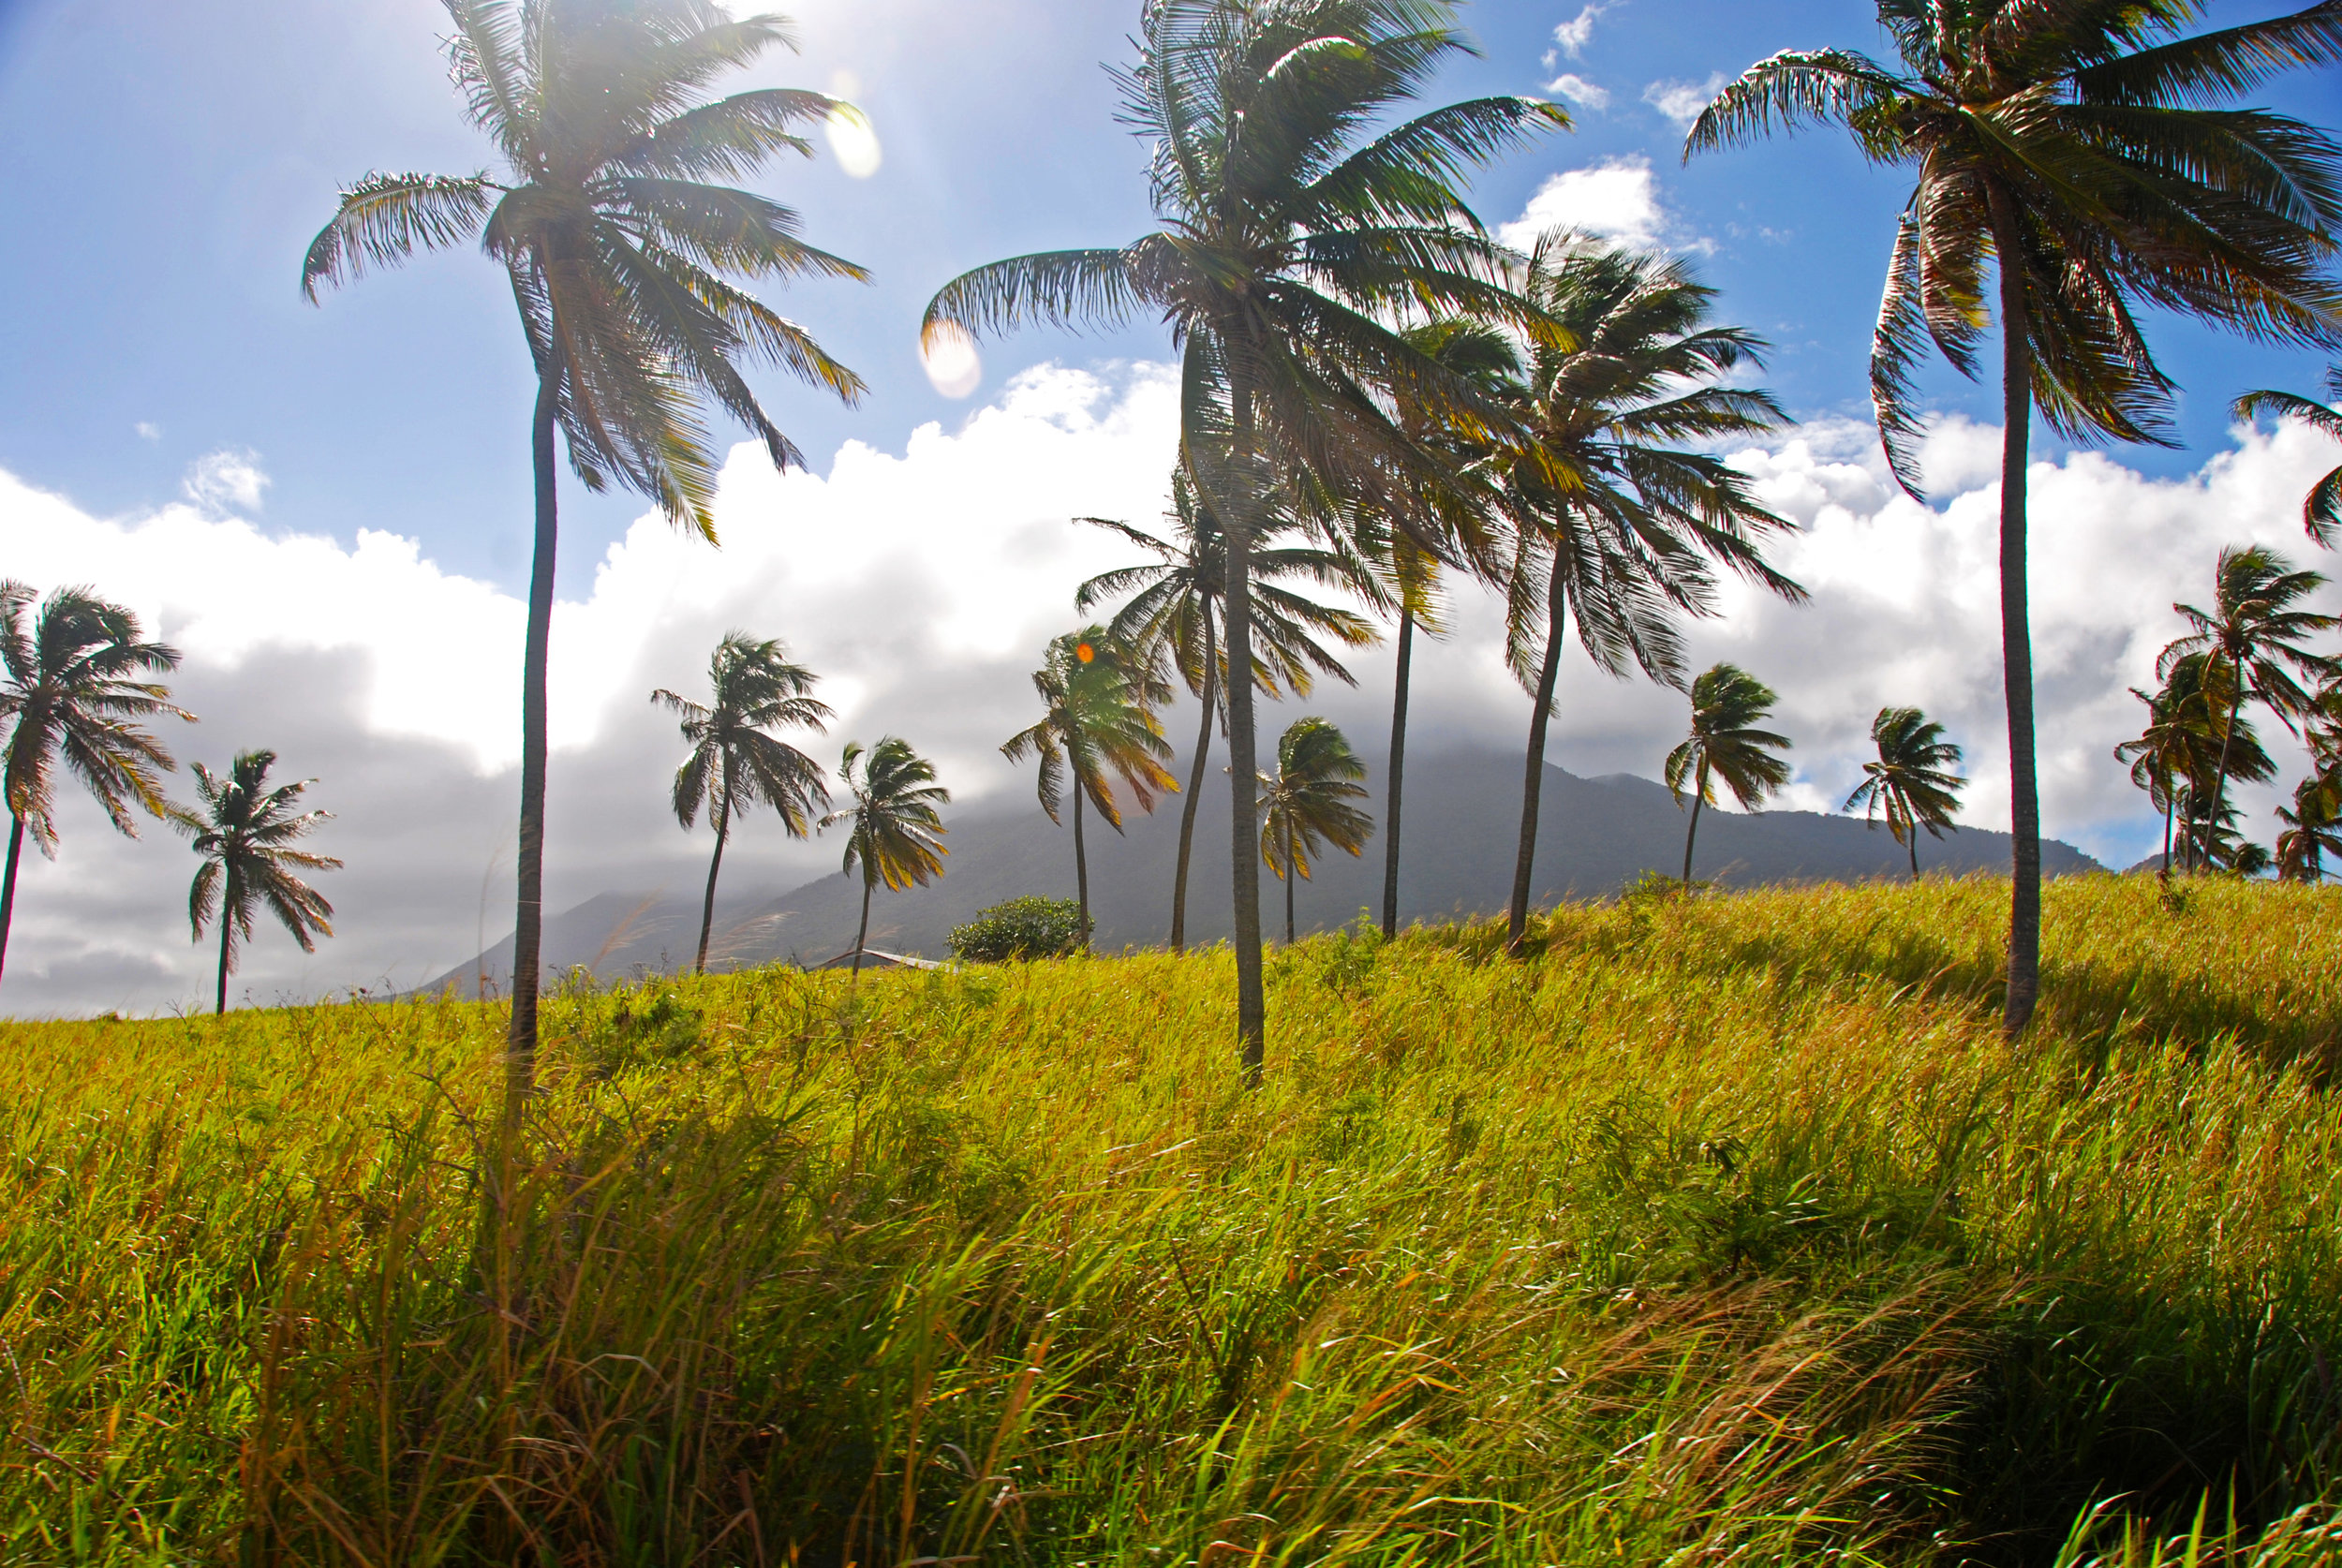 St._Kitts_grasslands_and_palm_trees_-_panoramio.jpg